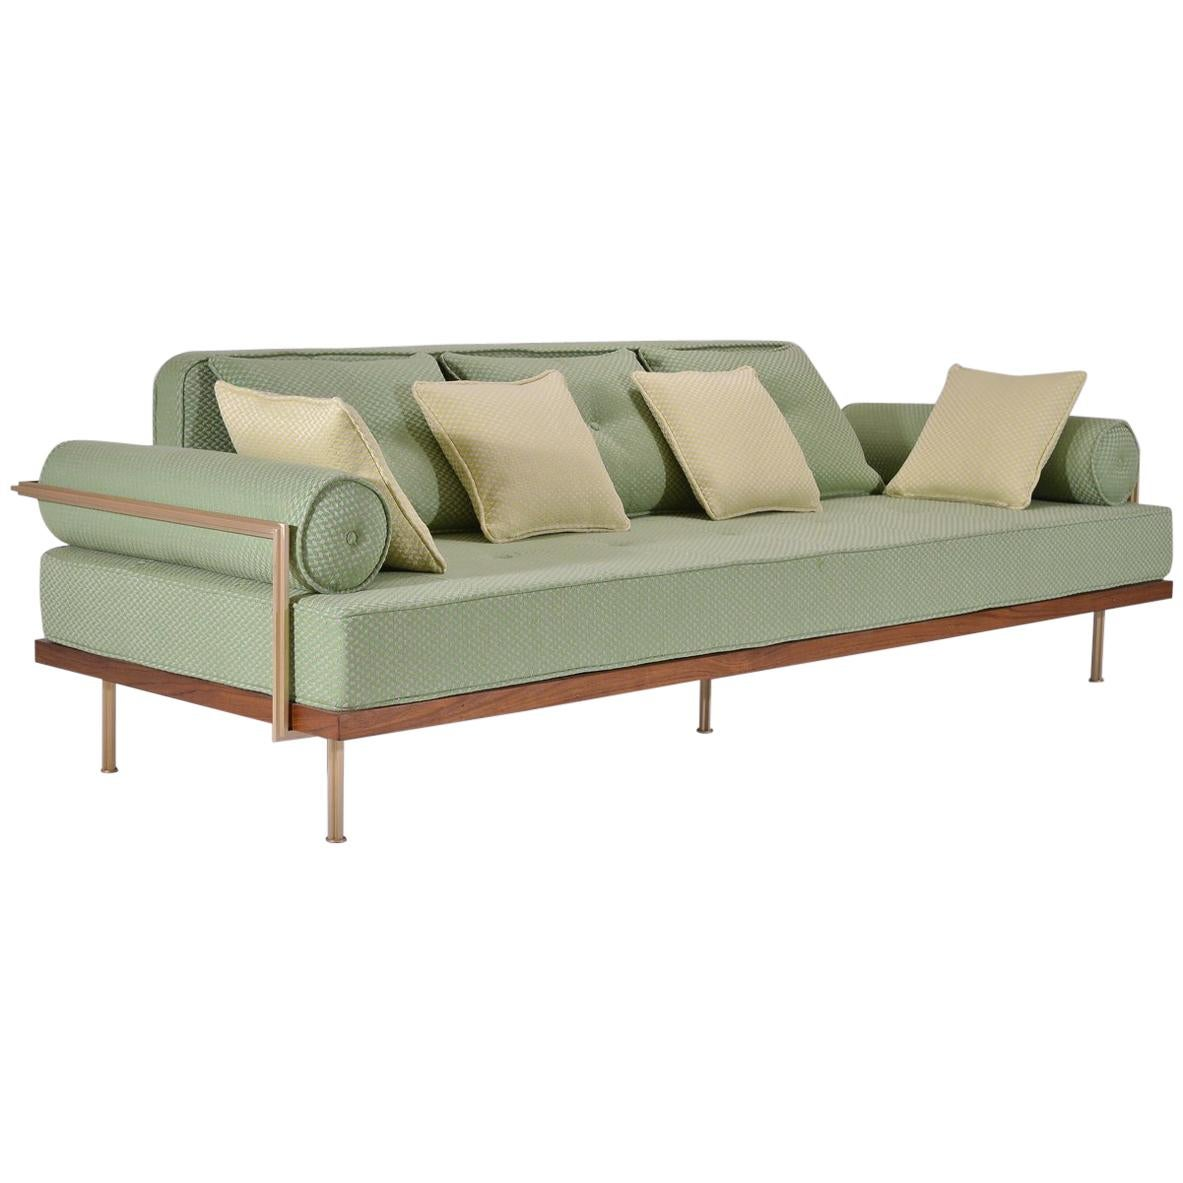 De Sede Sofa Rund Mid Century Modern Sofas 2 959 For Sale At 1stdibs